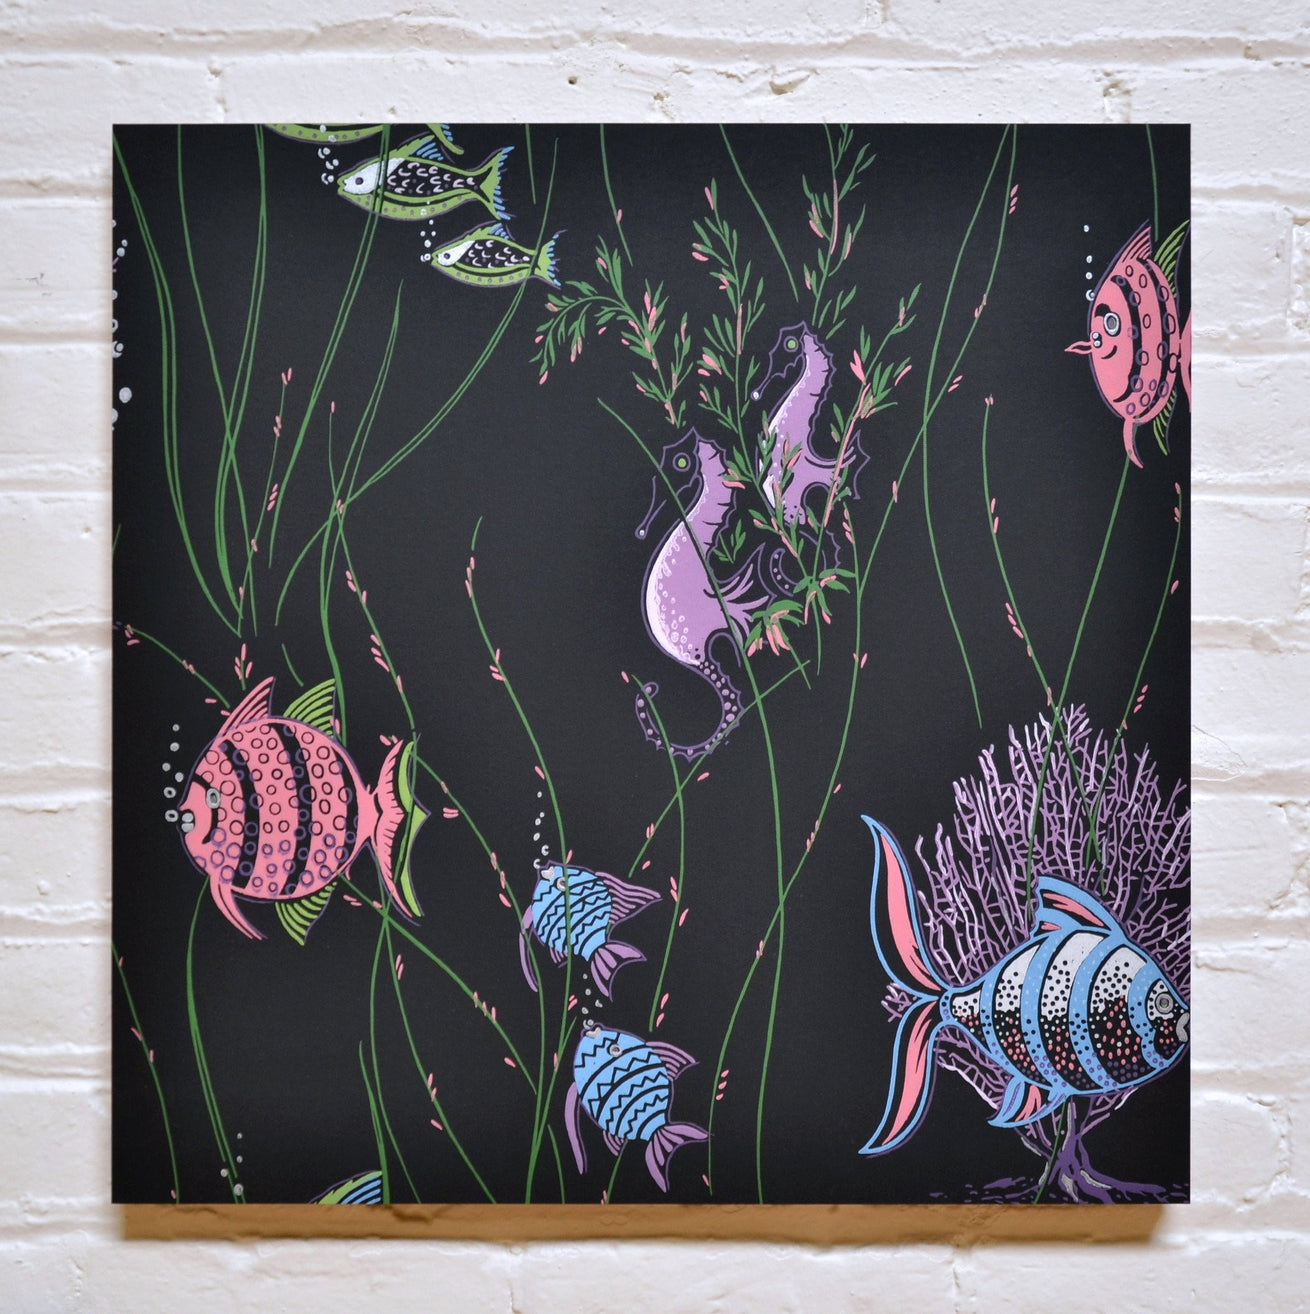 Fishes & Seahorses Bathroom Sidewall - Mounted Vintage Wallpaper Panel-Sold